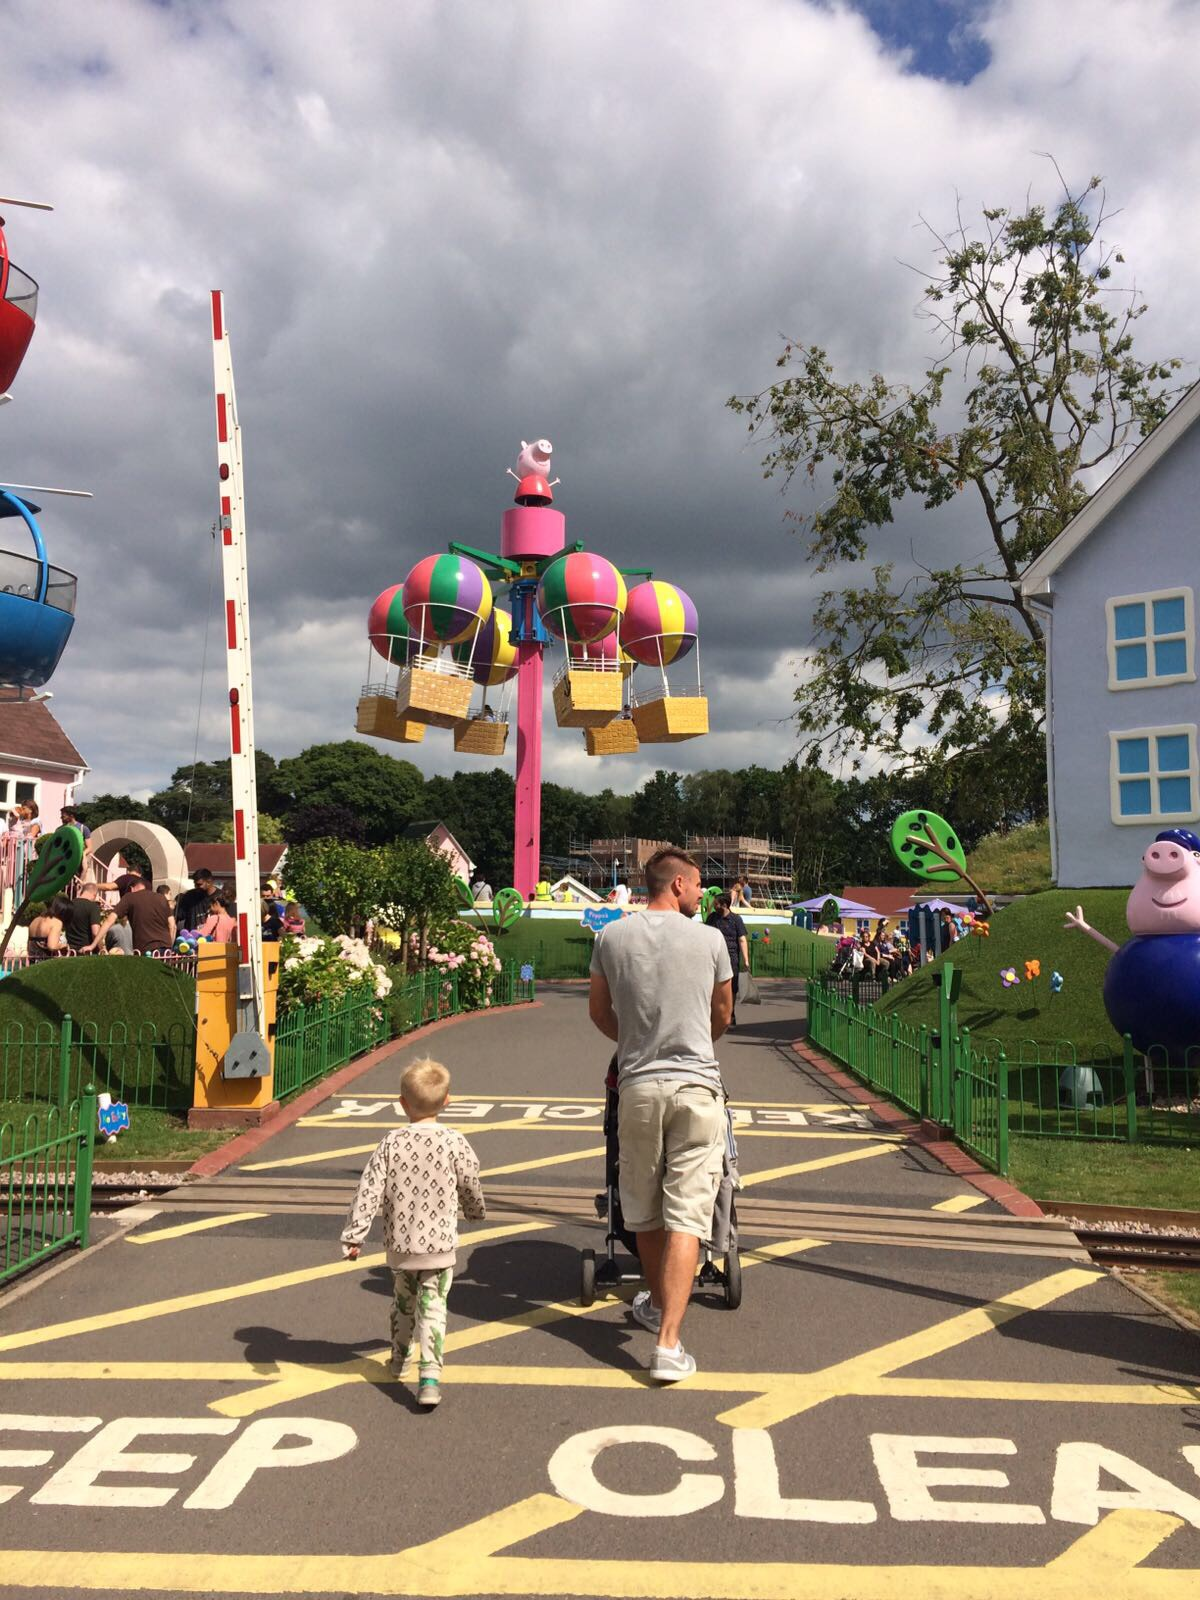 paultons park peppa pig world entrance